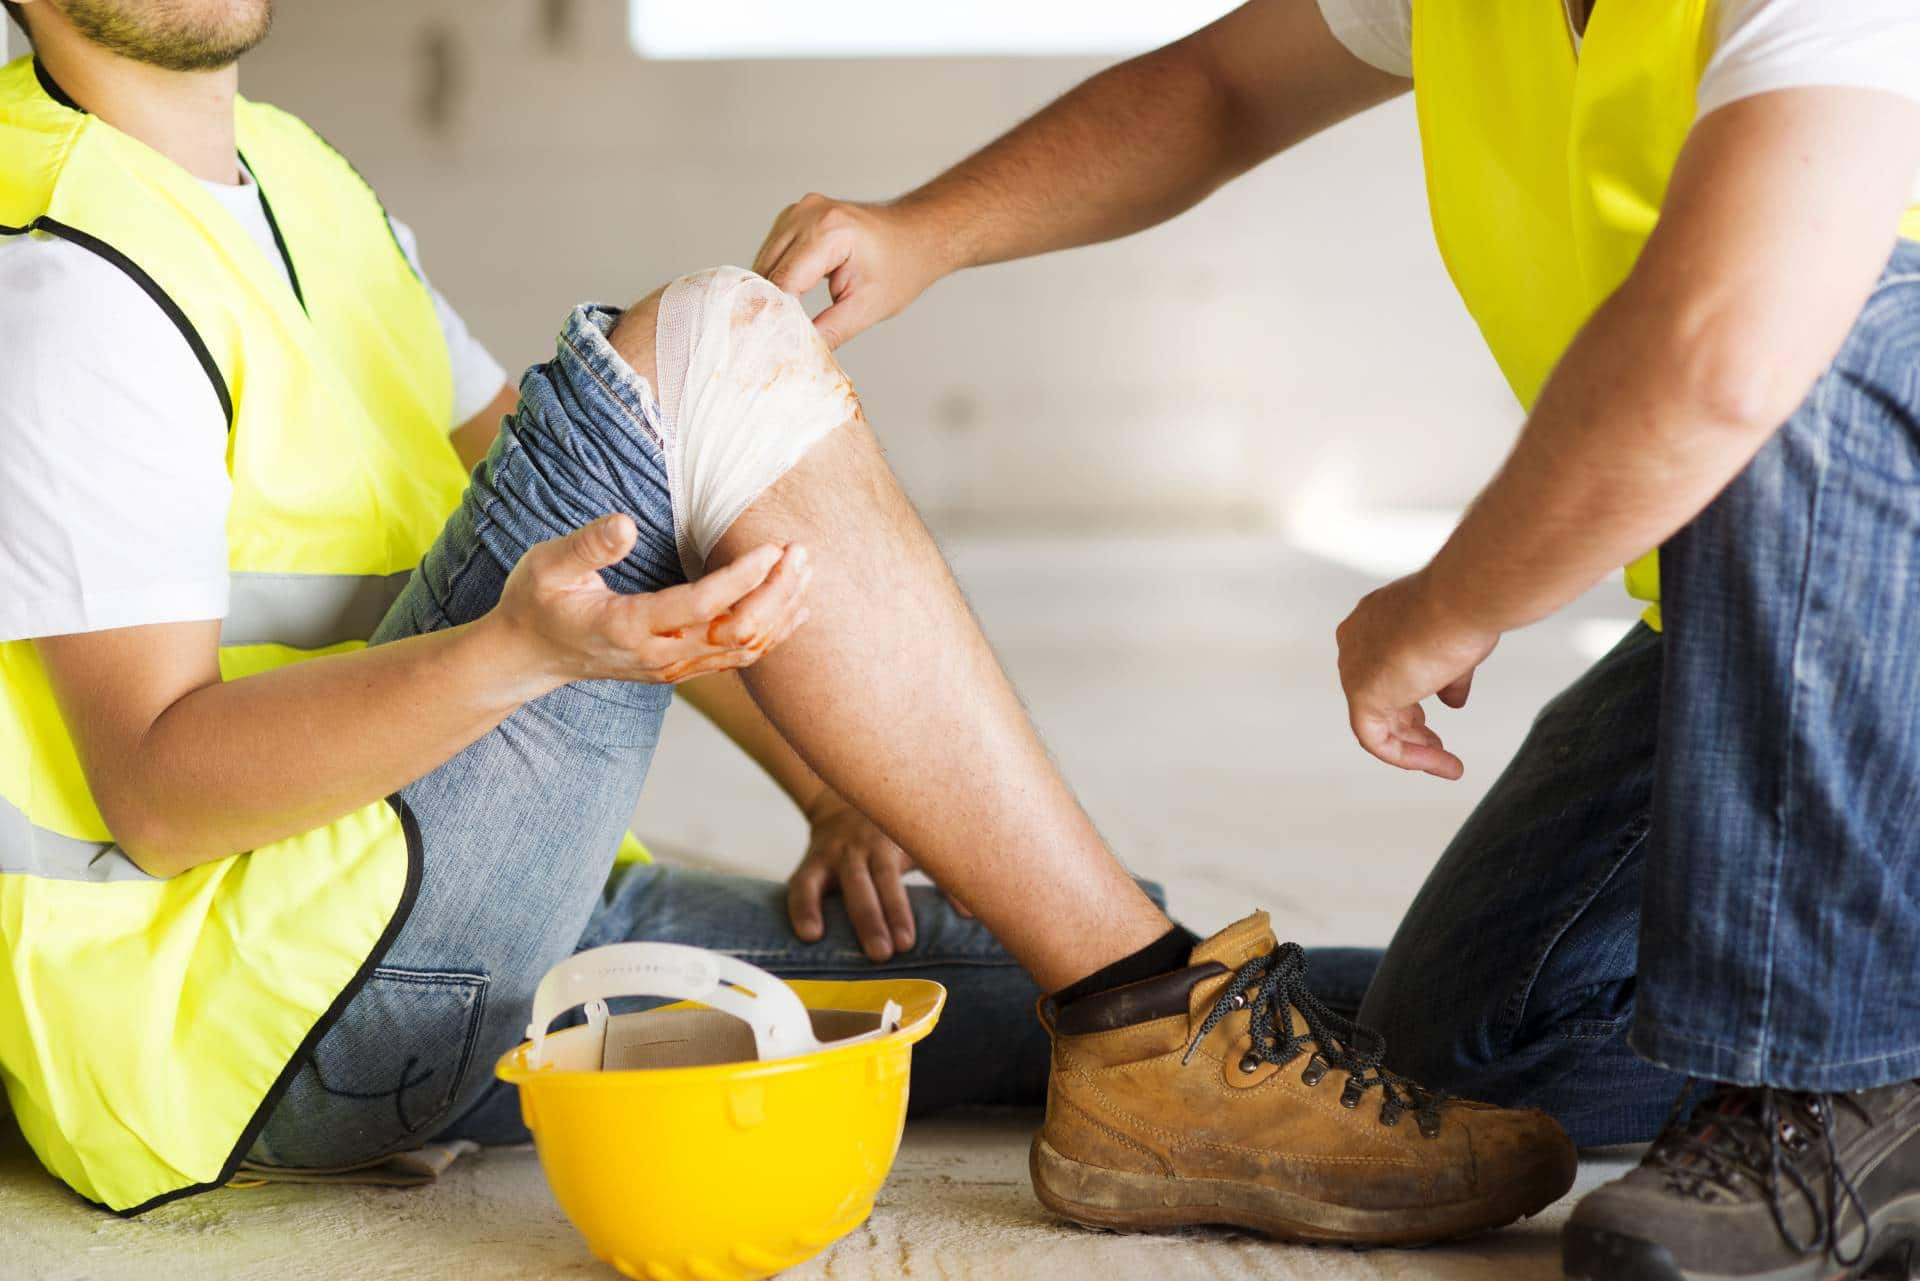 Hurt on the job? Schedule a free consultation with our personal injury lawyers at the Angell Law Firm in Reynoldstown, Ga.